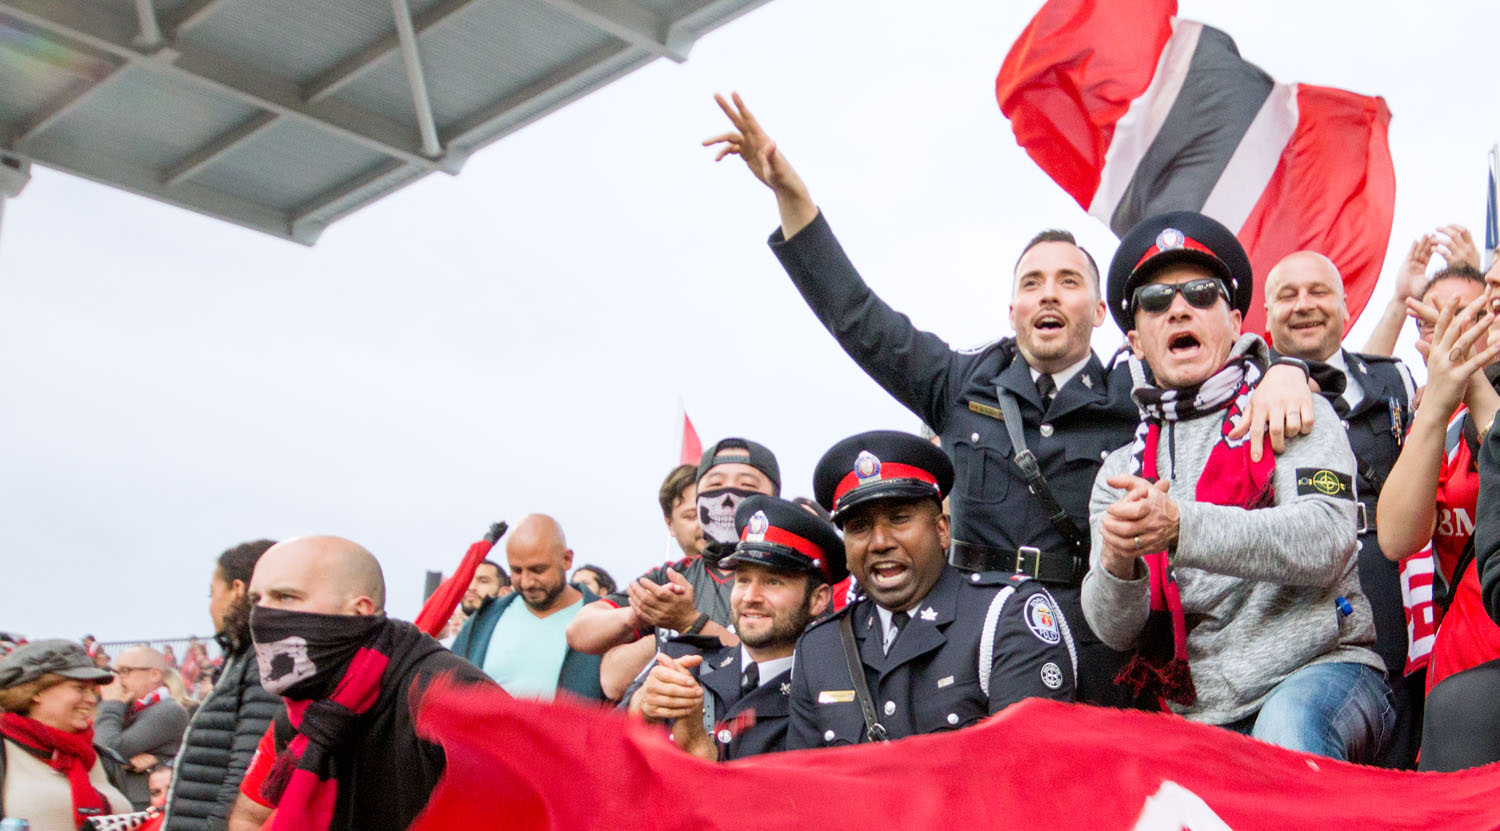 The Toronto Police Service celebrates with Toronto FC fans at BMO Field in Toronto Canada. Image by Dennis Marciniak of denMAR Media.